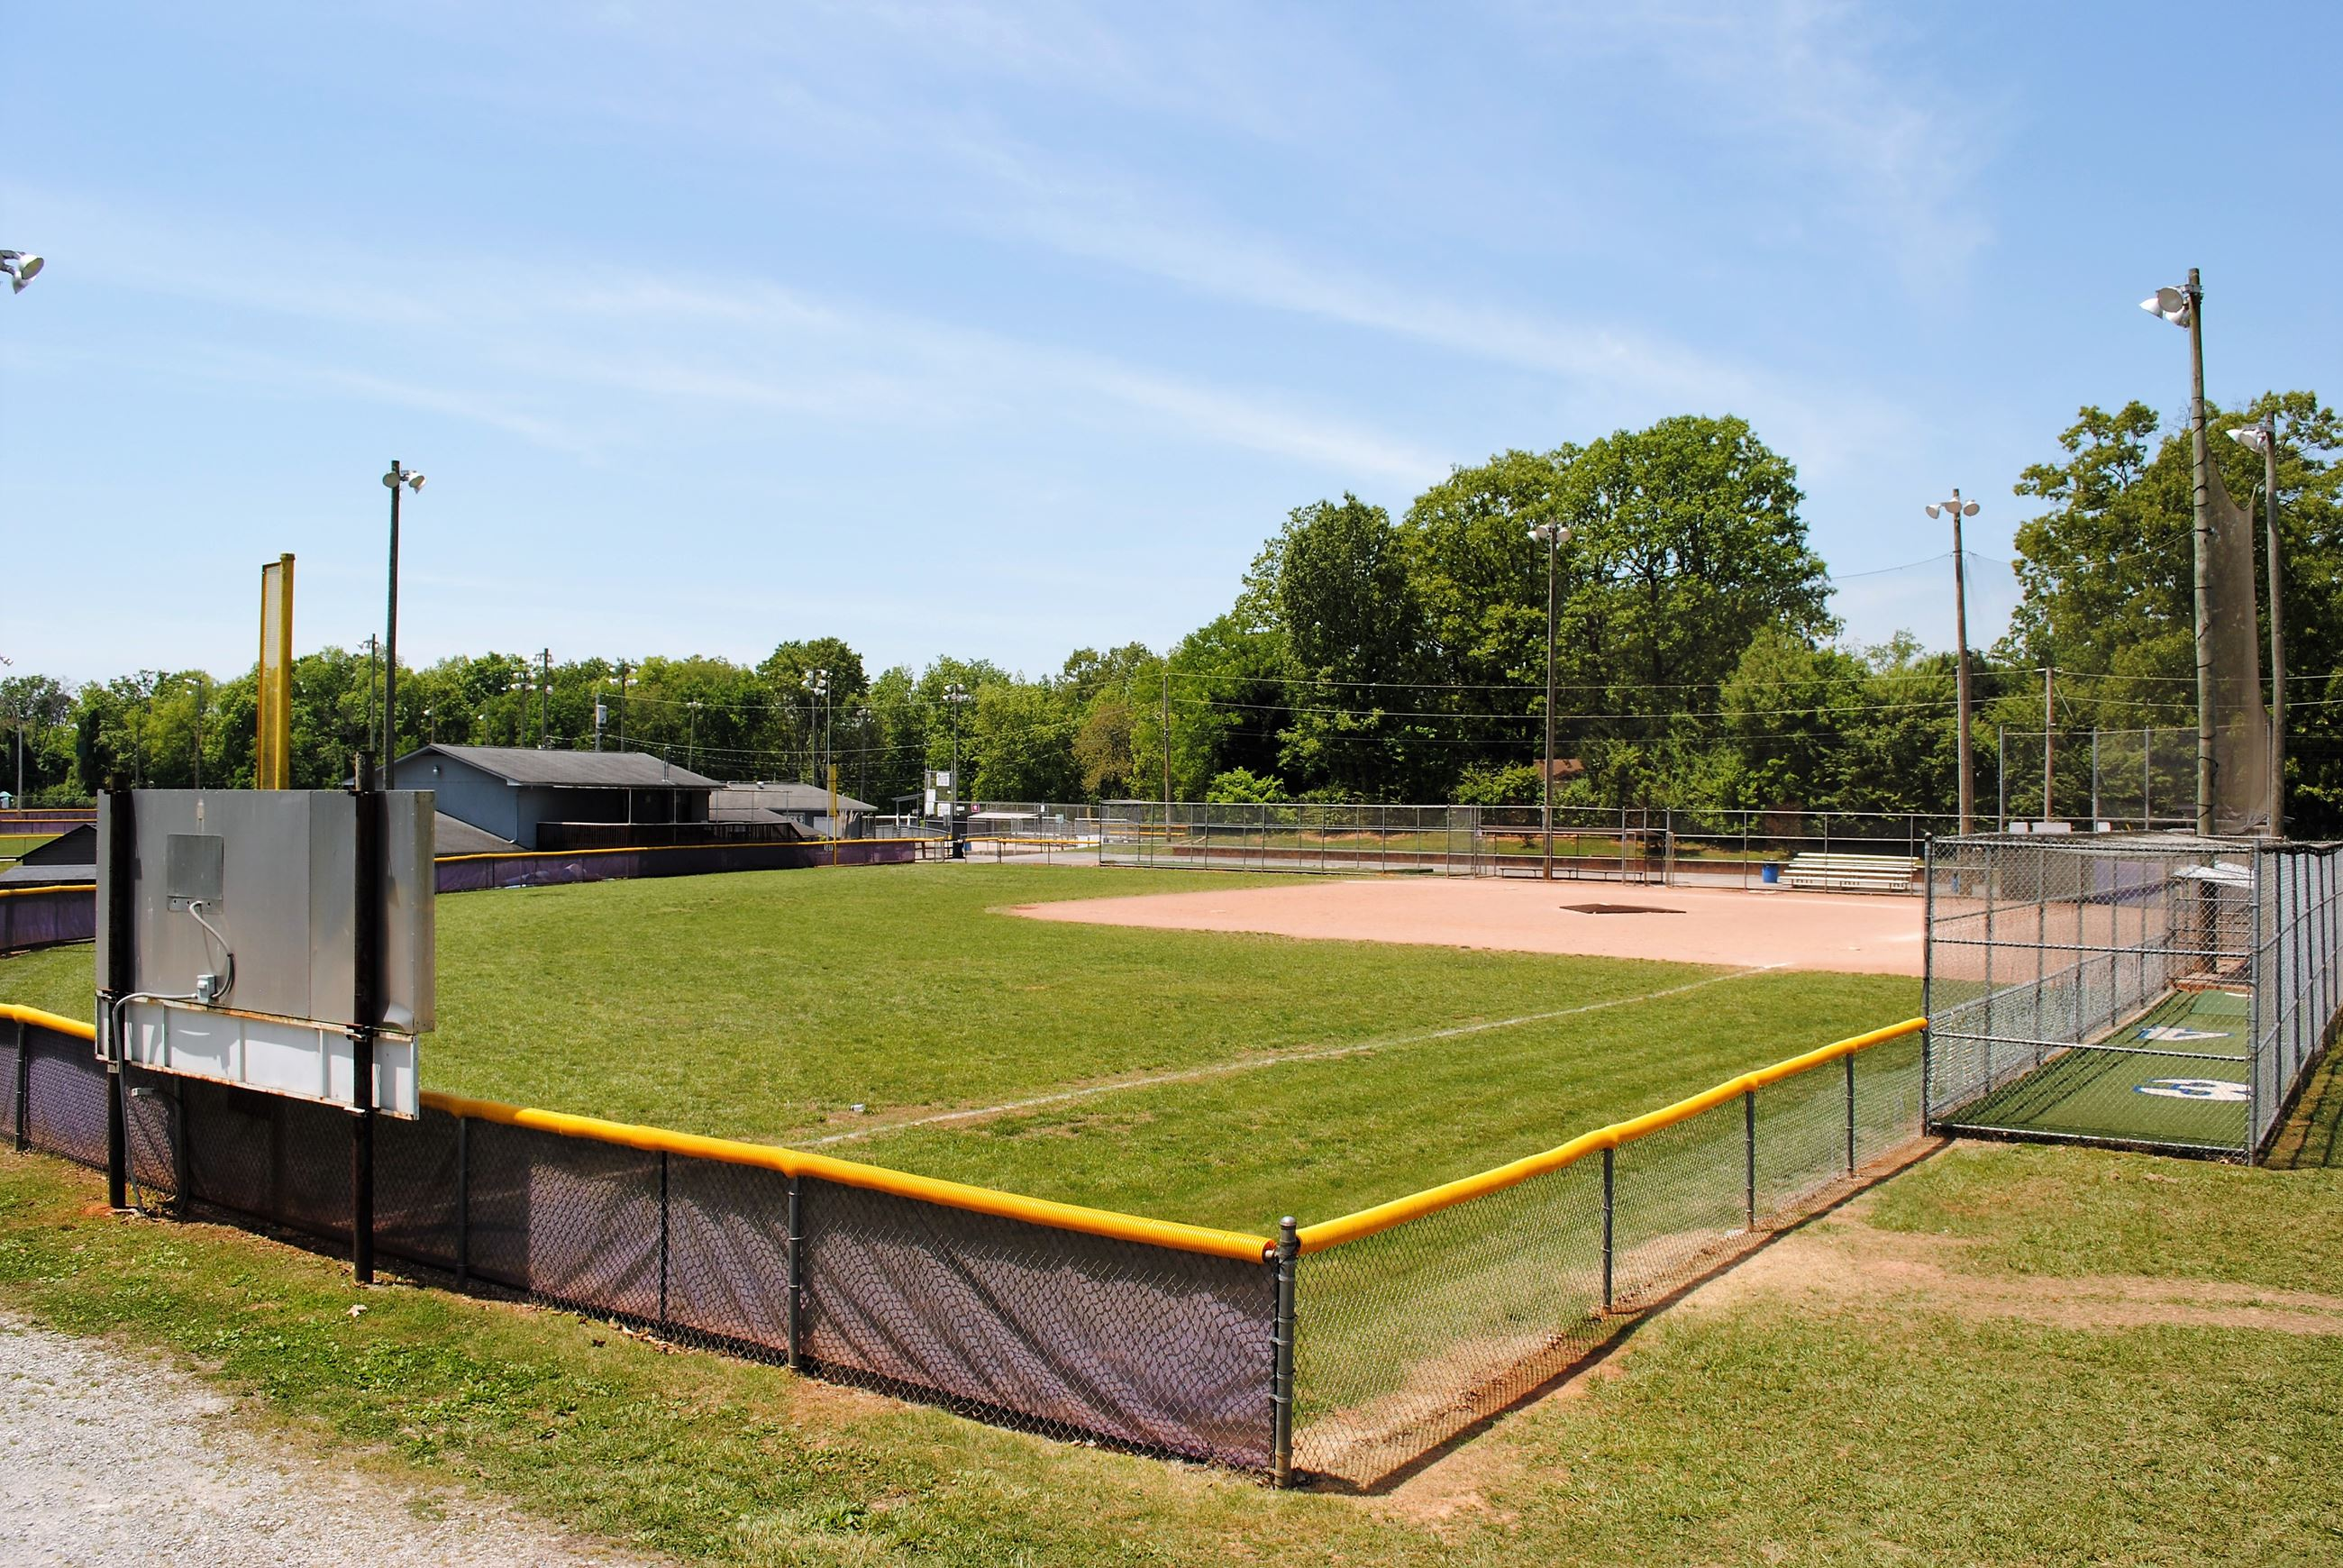 Harrison Recreation Baseball Field and bating cages